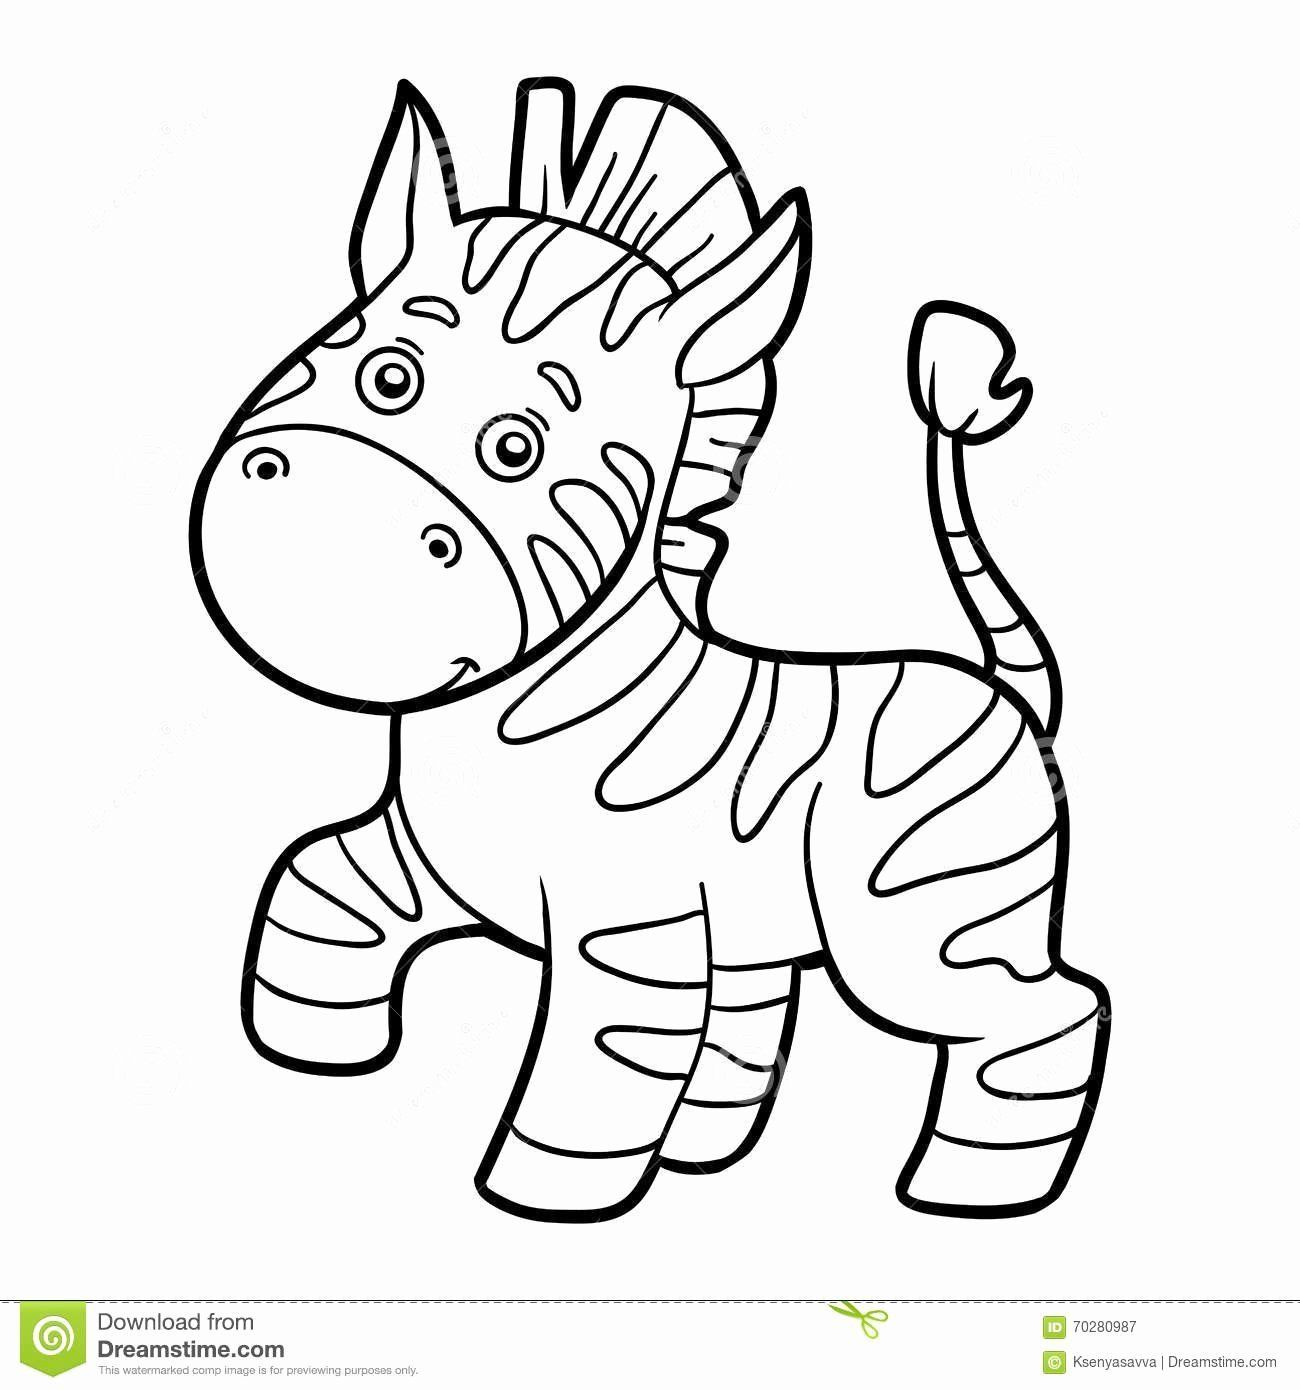 Baby Zebra Coloring Pages Inspirational Coloring Book Coloring Page Zebra Stock Vector In 2020 Zebra Coloring Pages Cartoon Coloring Pages Animal Coloring Pages